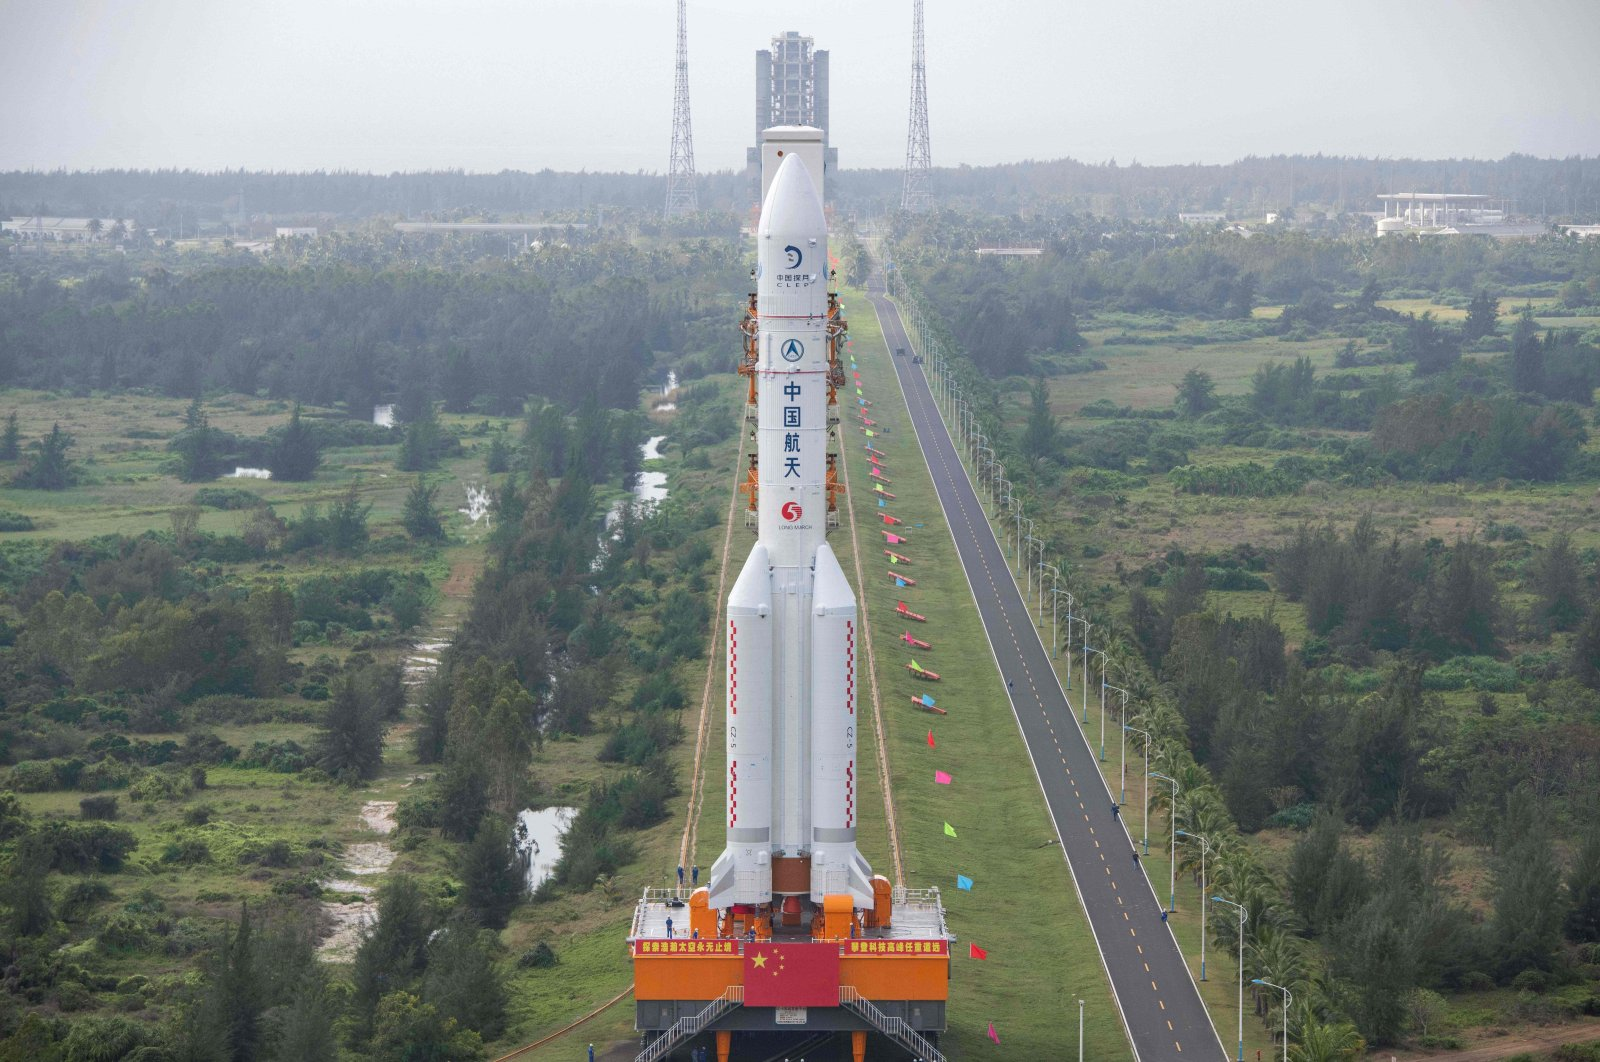 The Long March-5 rocket, which has launched China's Chang'e-5 lunar probe, seen being vertically transported to the launching area at the Wenchang Spacecraft Launch Site in southern China's Hainan province, Nov. 17, 2020. (AFP Photo)